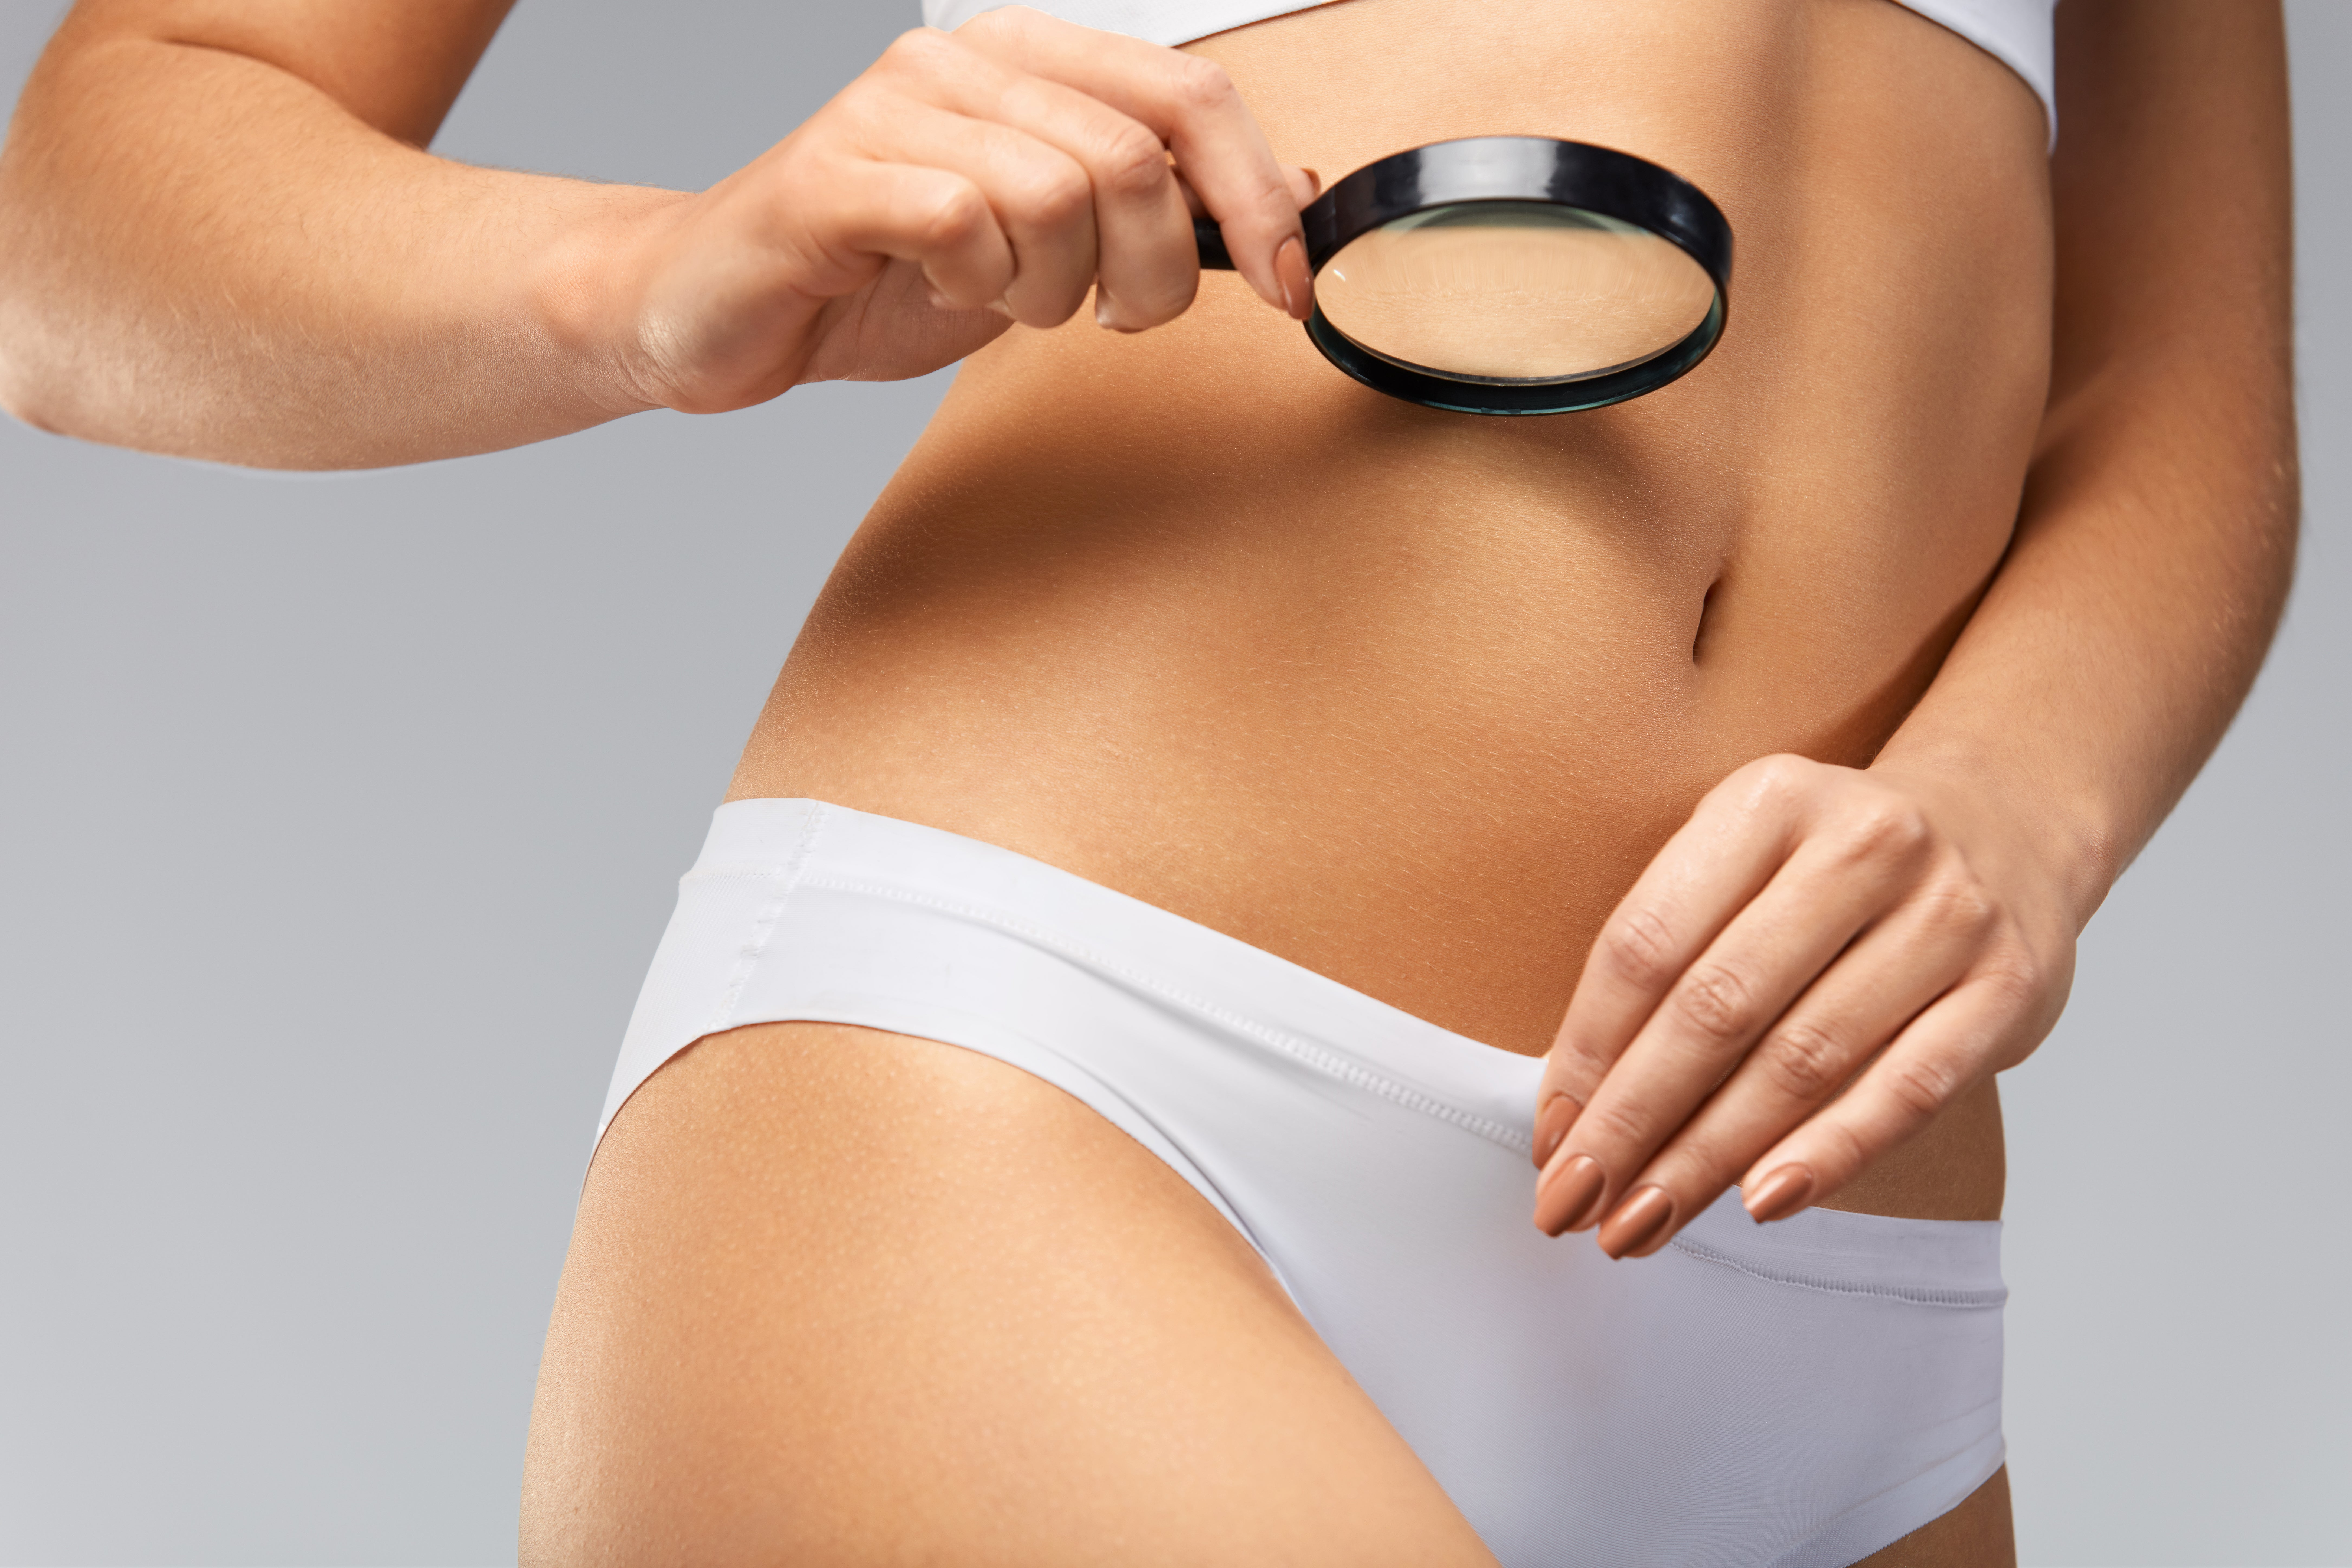 a woman holds a magnifying glass up to her body